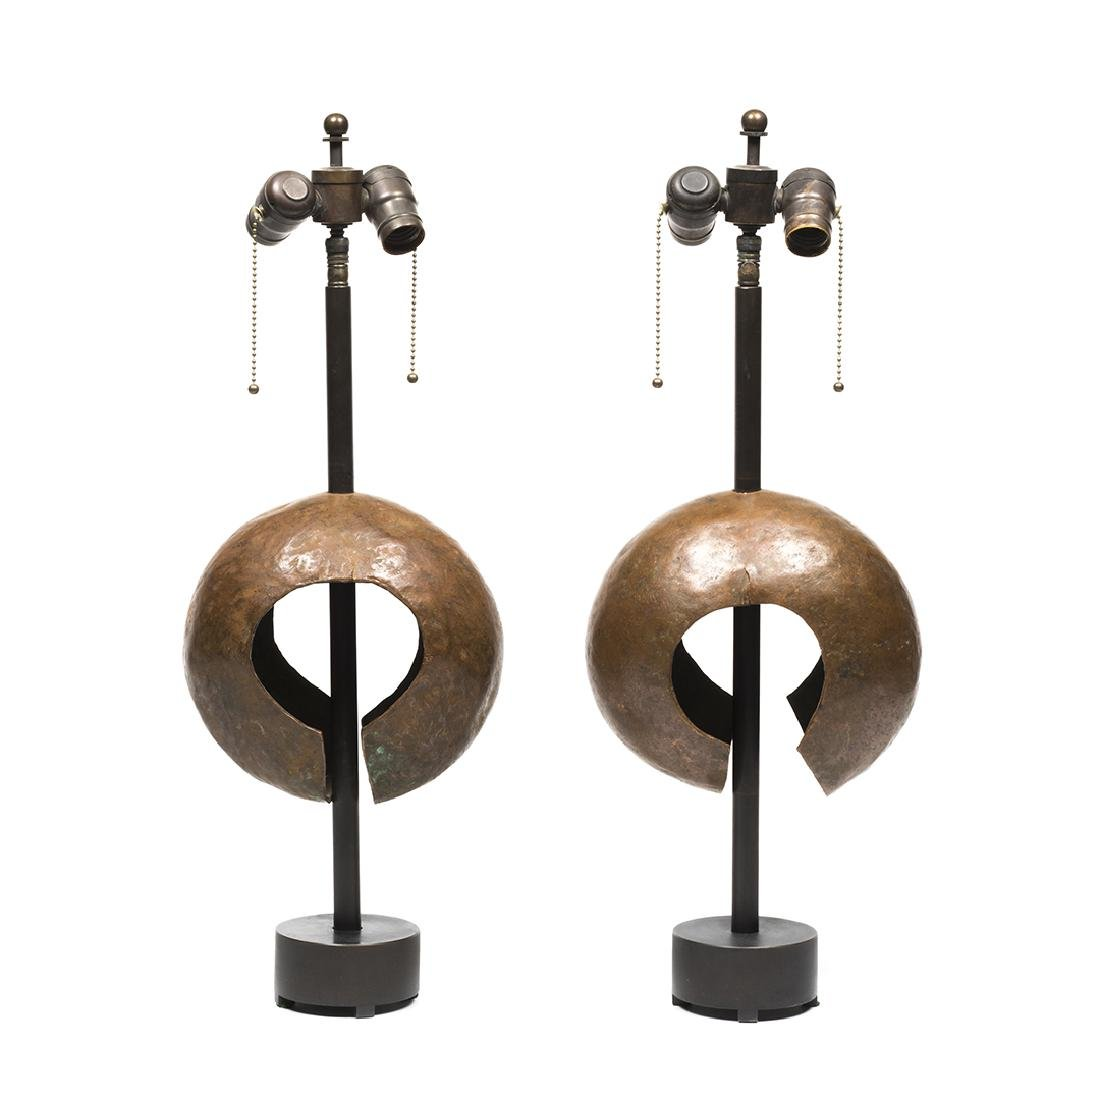 Hammered Copper Lamps (2)